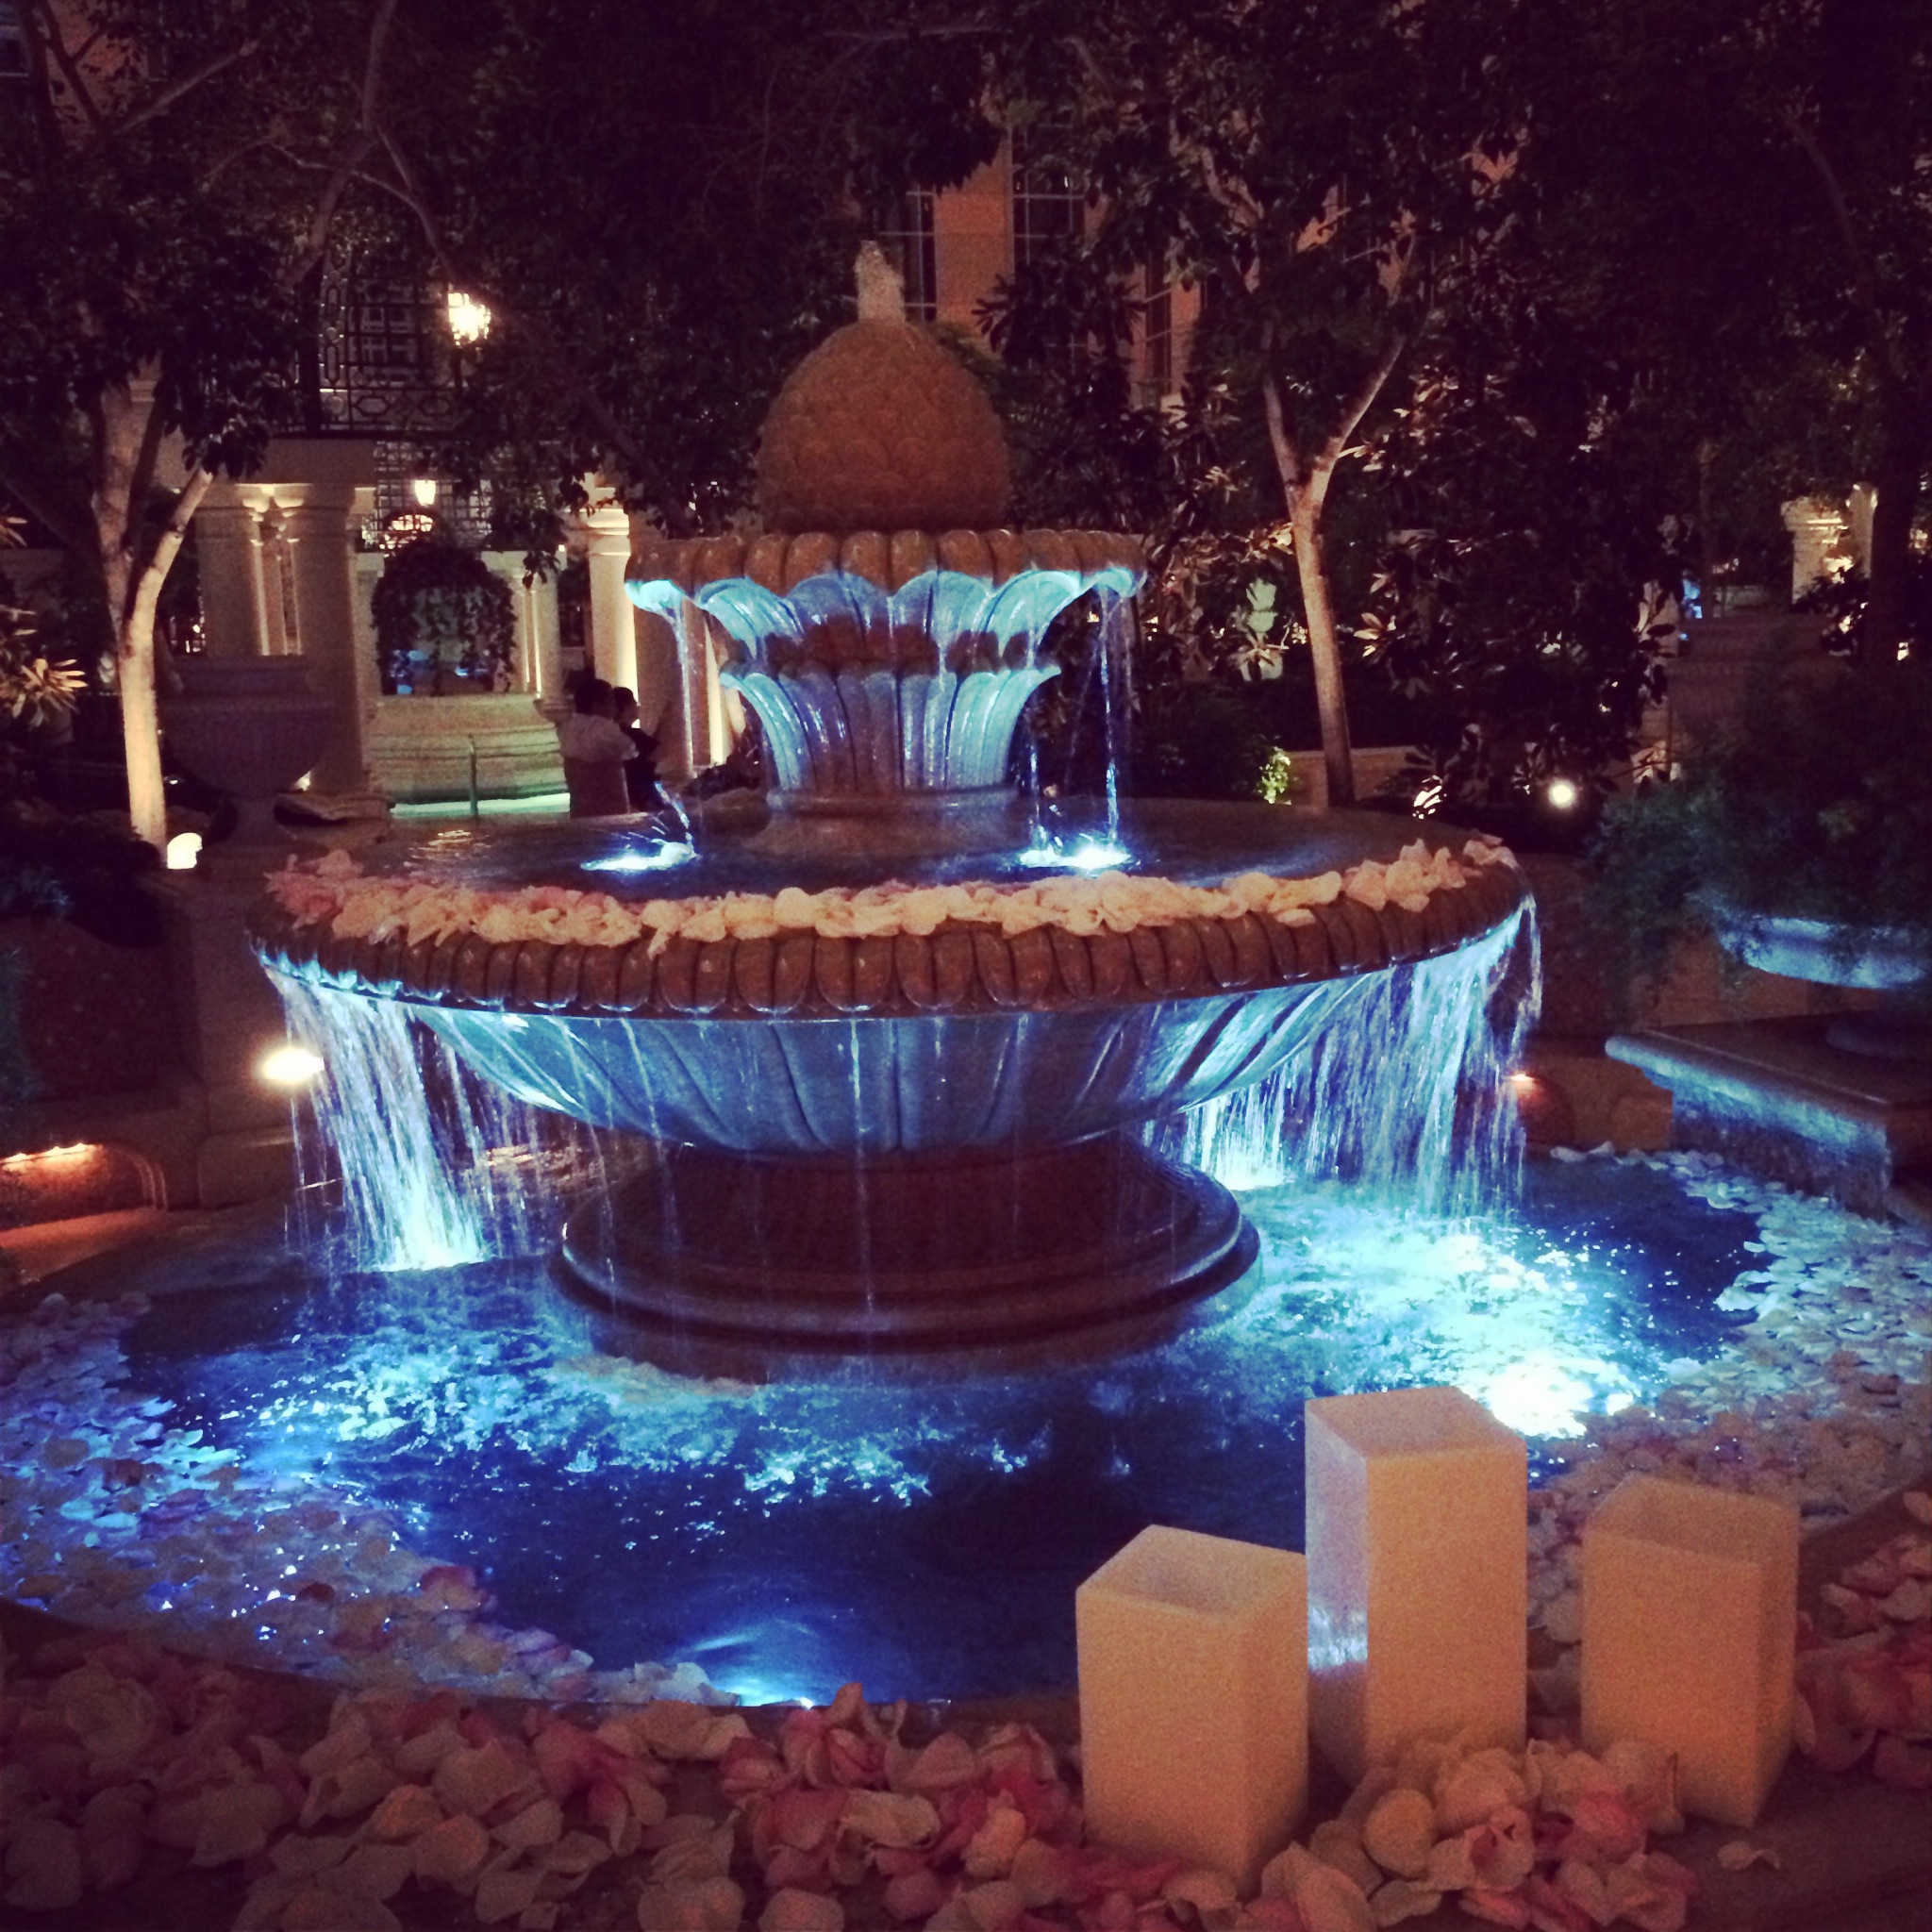 Michelle & Curtis were married in the Venetian Terrace.  The fountain, petals, lights and trees make it so intimate and beautiful. Photo by Andrea Eppolito Events.